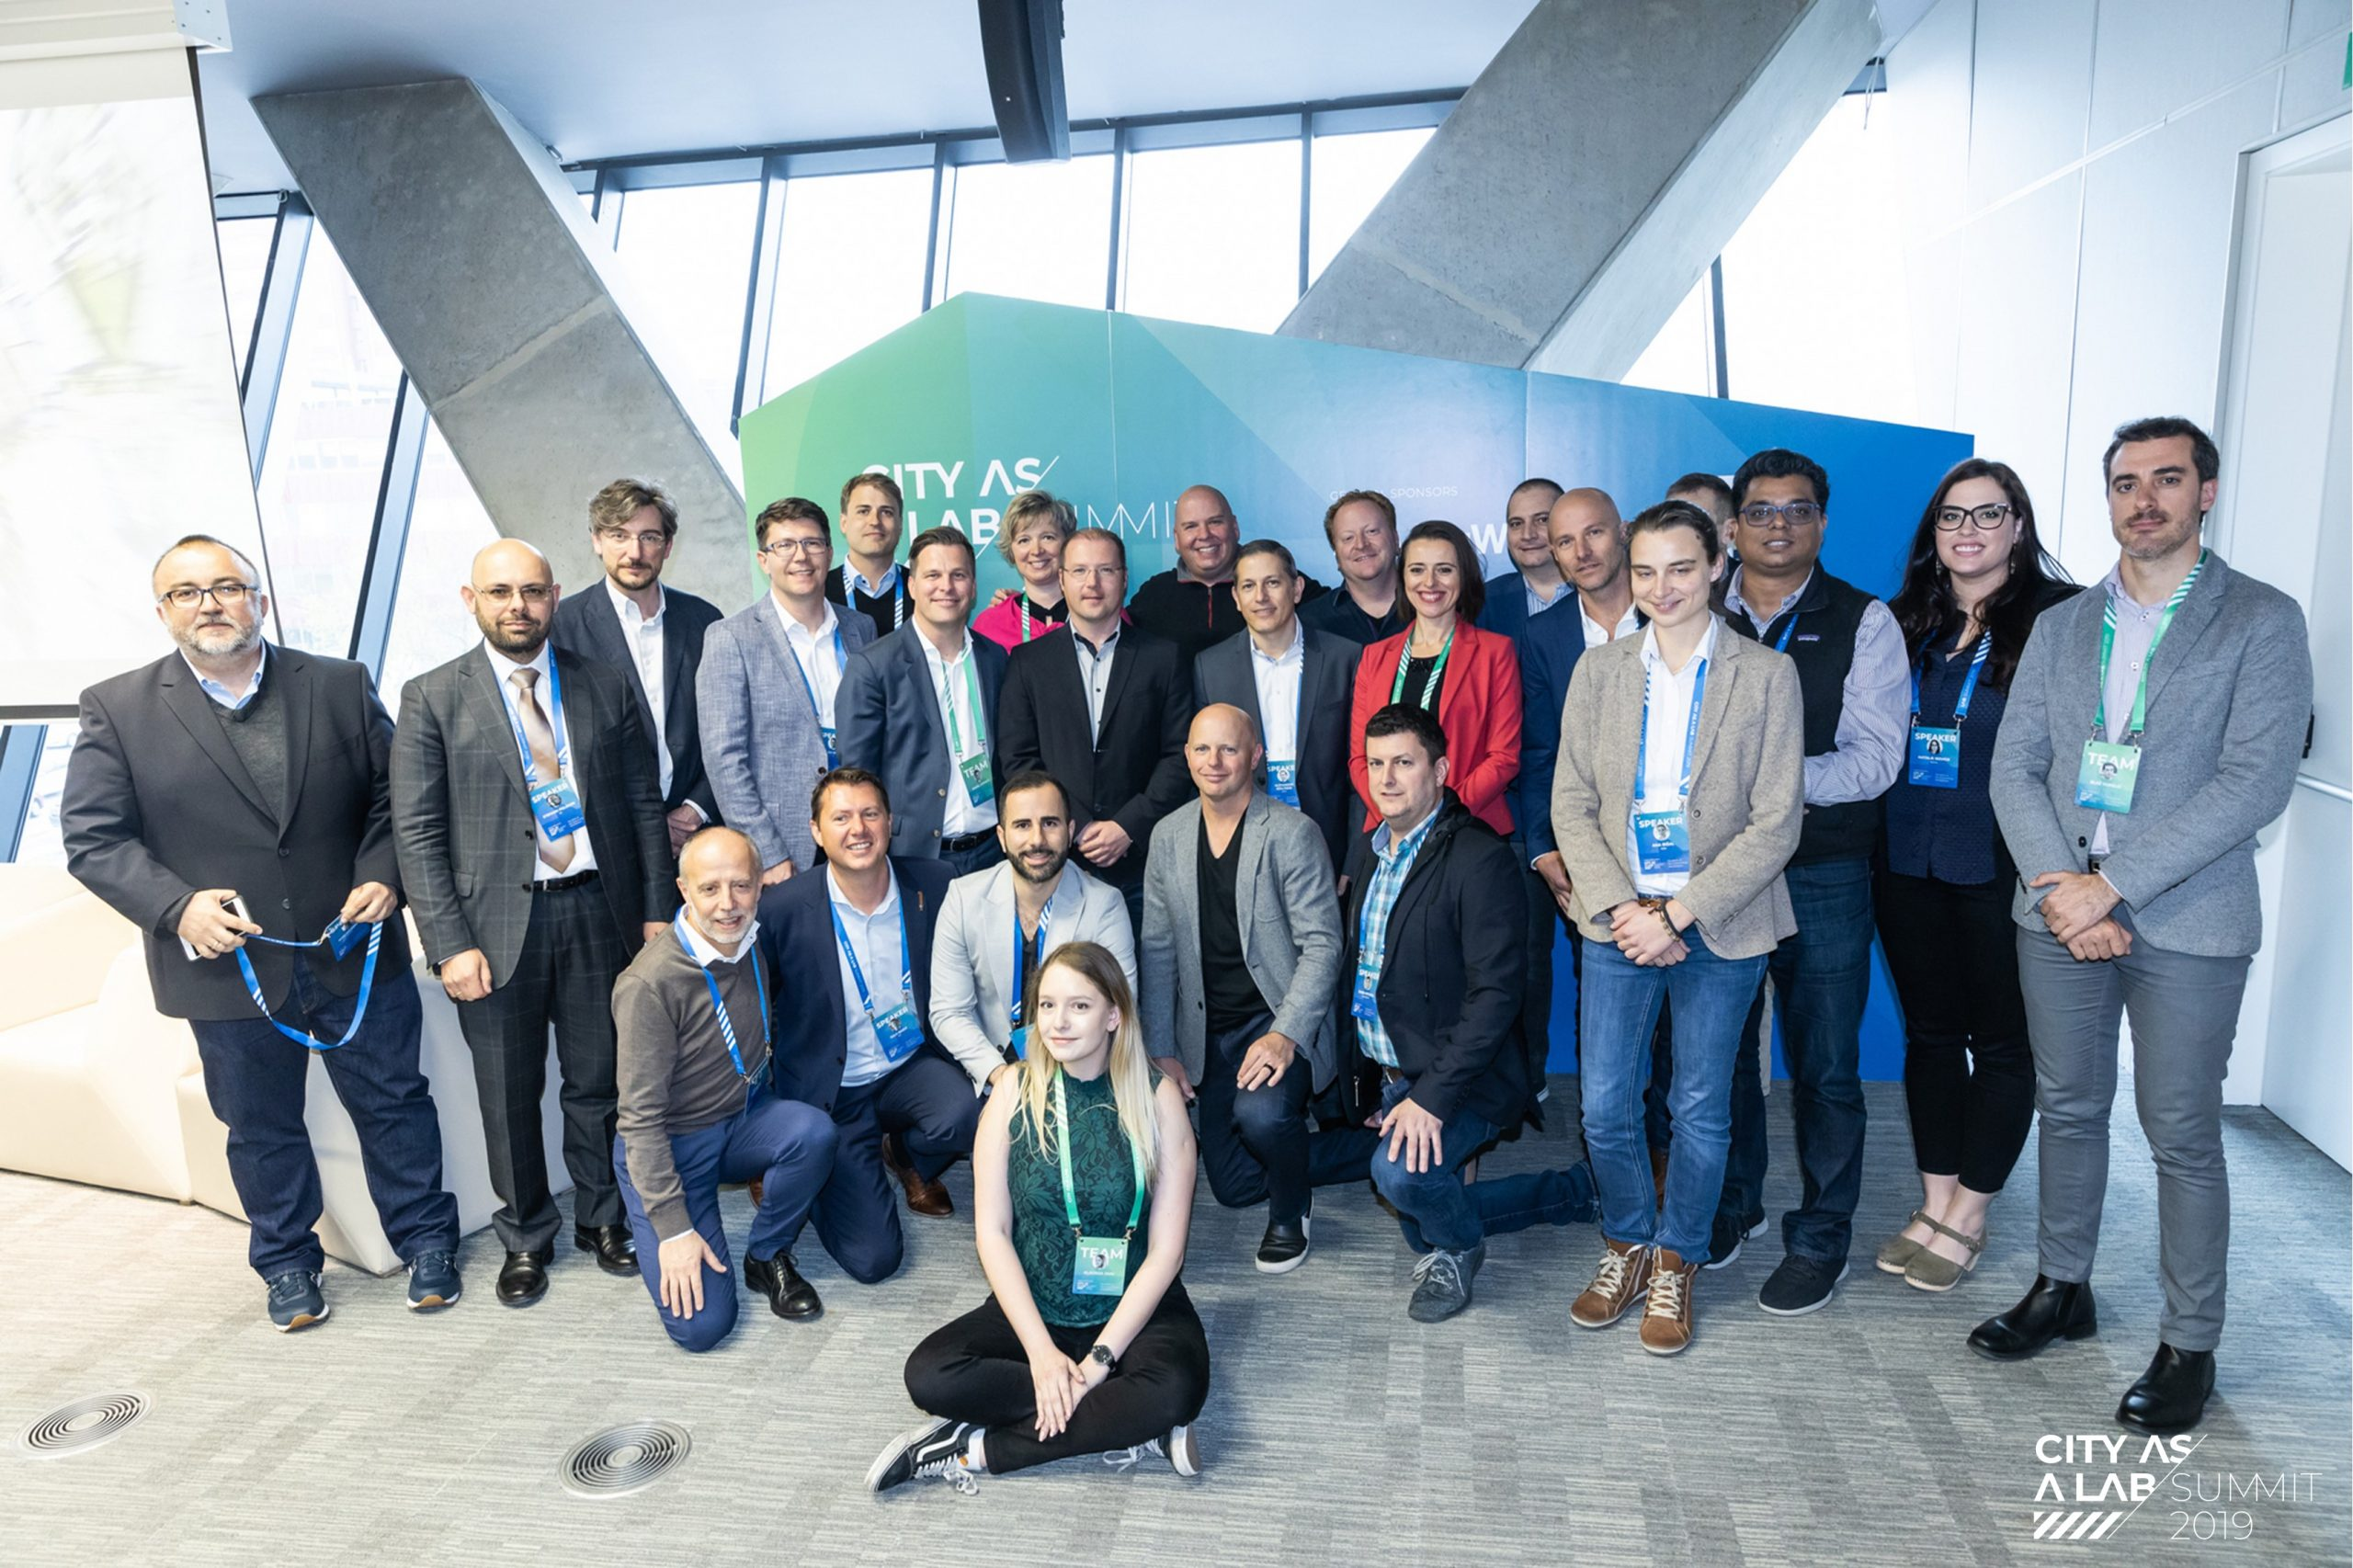 City as a Lab Summit 2019